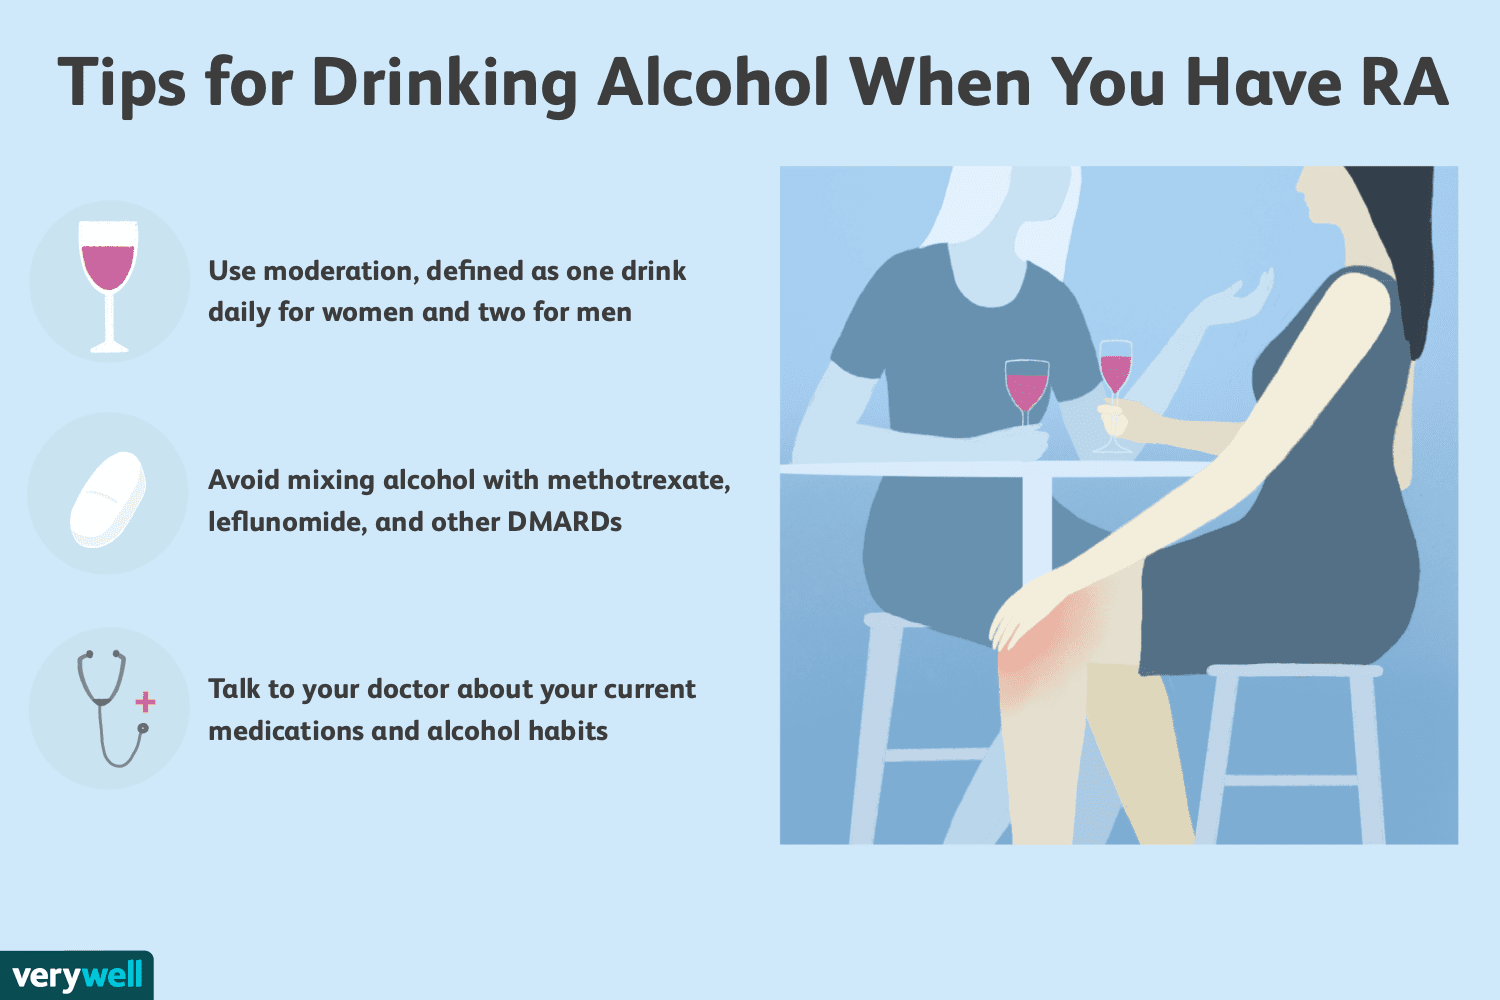 Tips for Drinking Alcohol When You Have RA